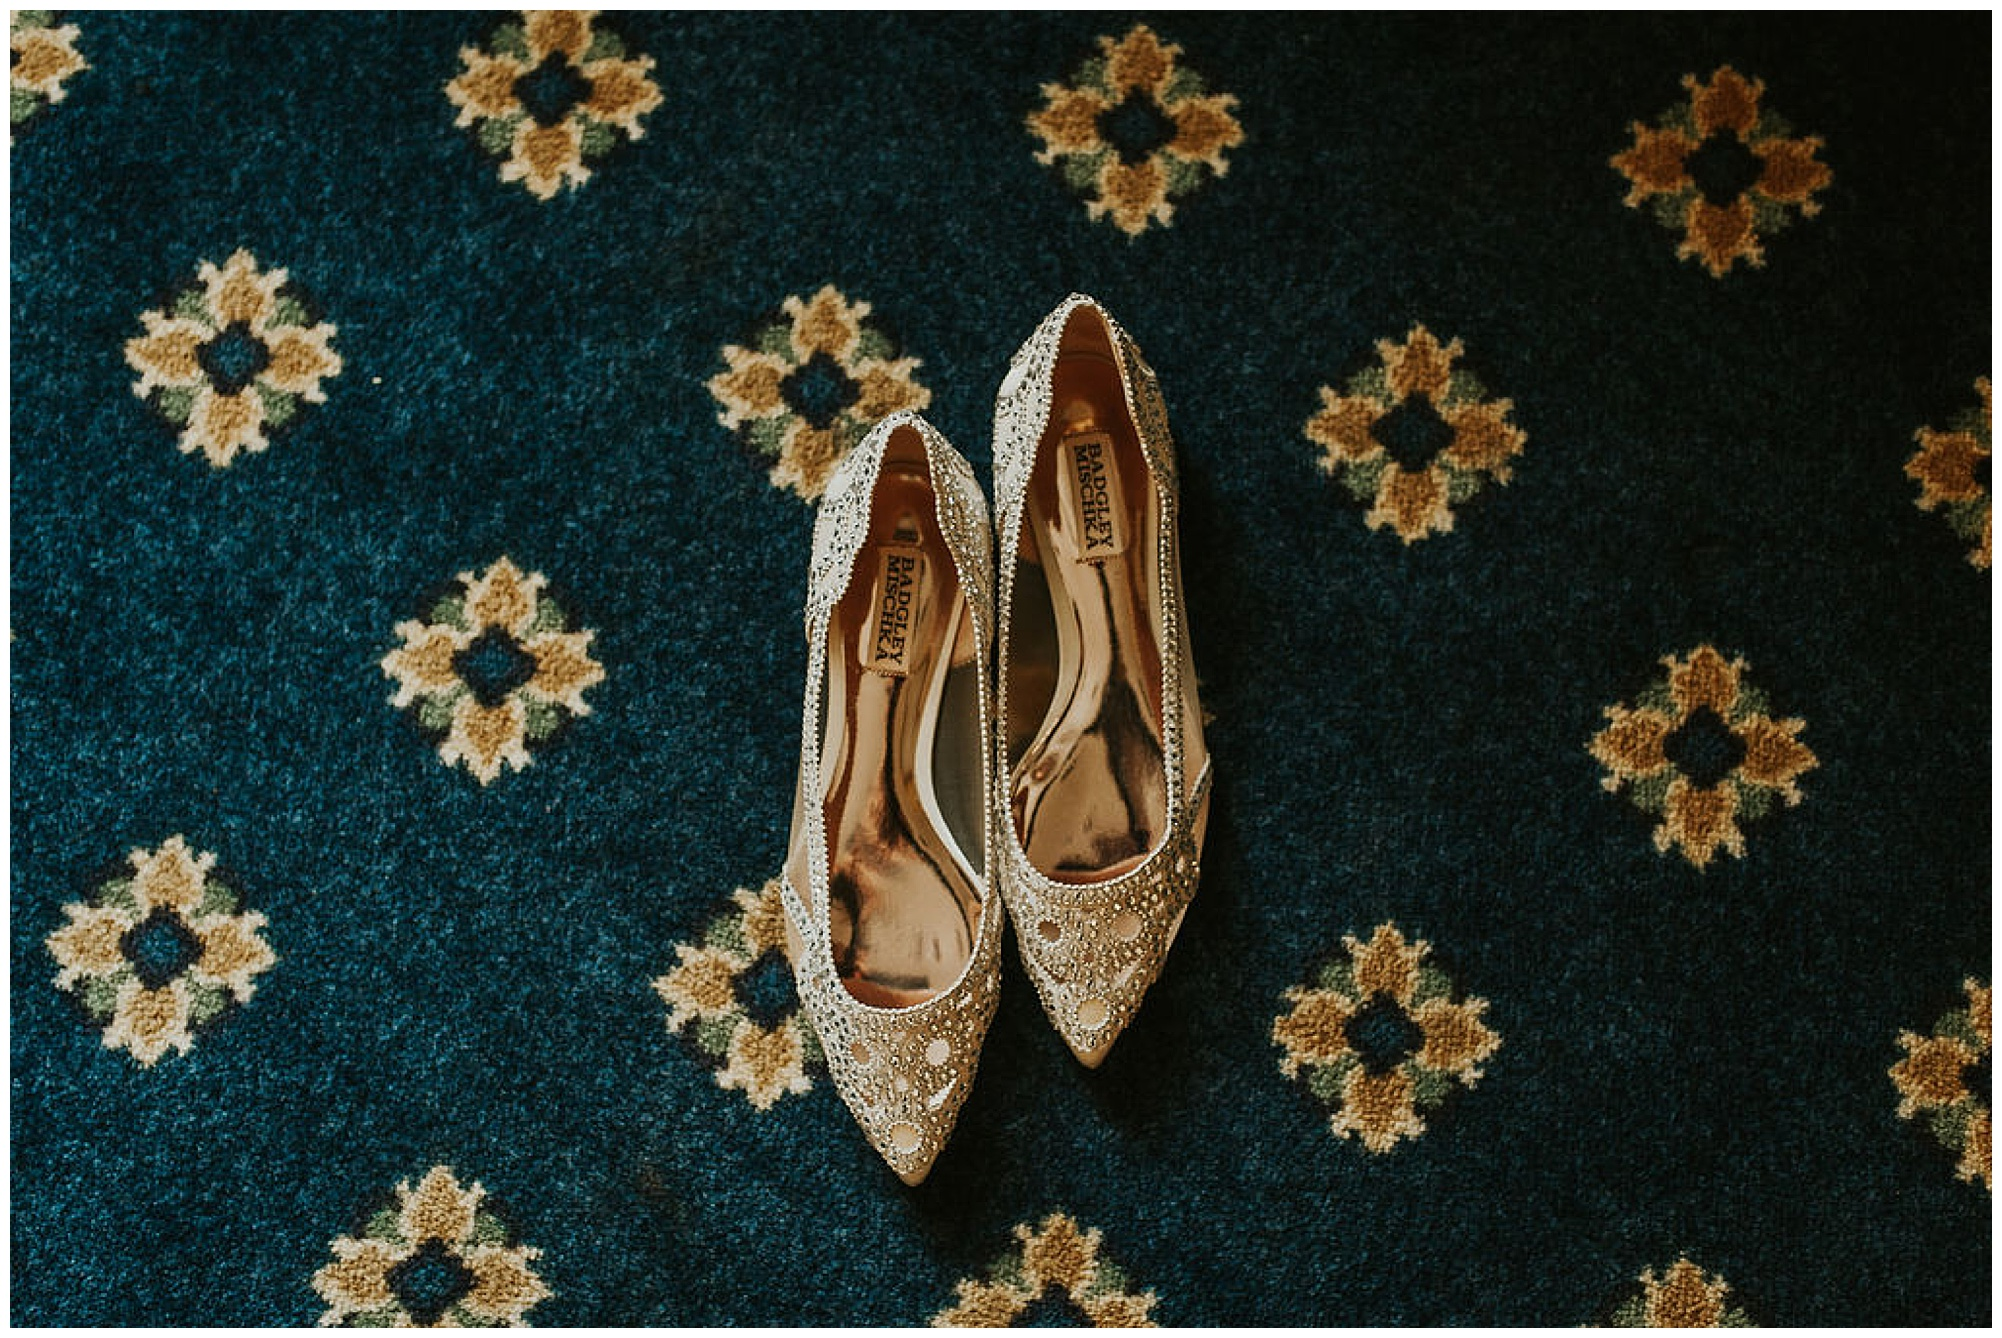 badgley mischka wedding shoes with kitten heels and pointed toe on blue and yellow carpet at the tidewater inn venue in easton maryland